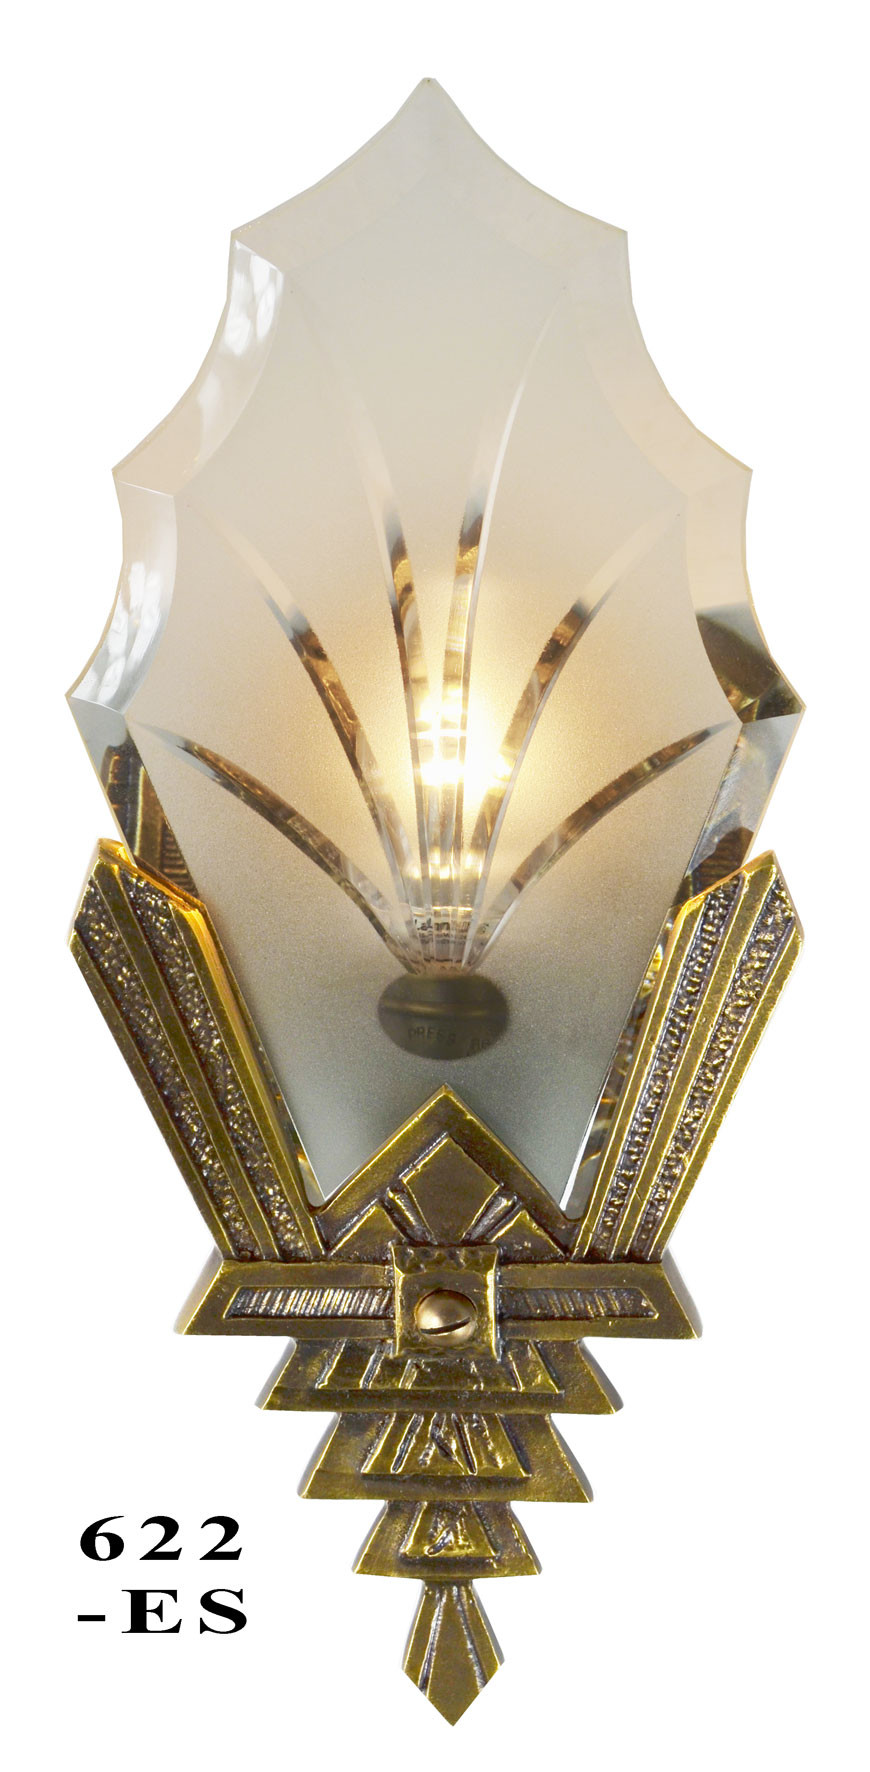 Wall Sconce Lighting Art Deco : Vintage Hardware & Lighting - Art Deco Wall Sconces Cut Glass Lighting (622-ES)